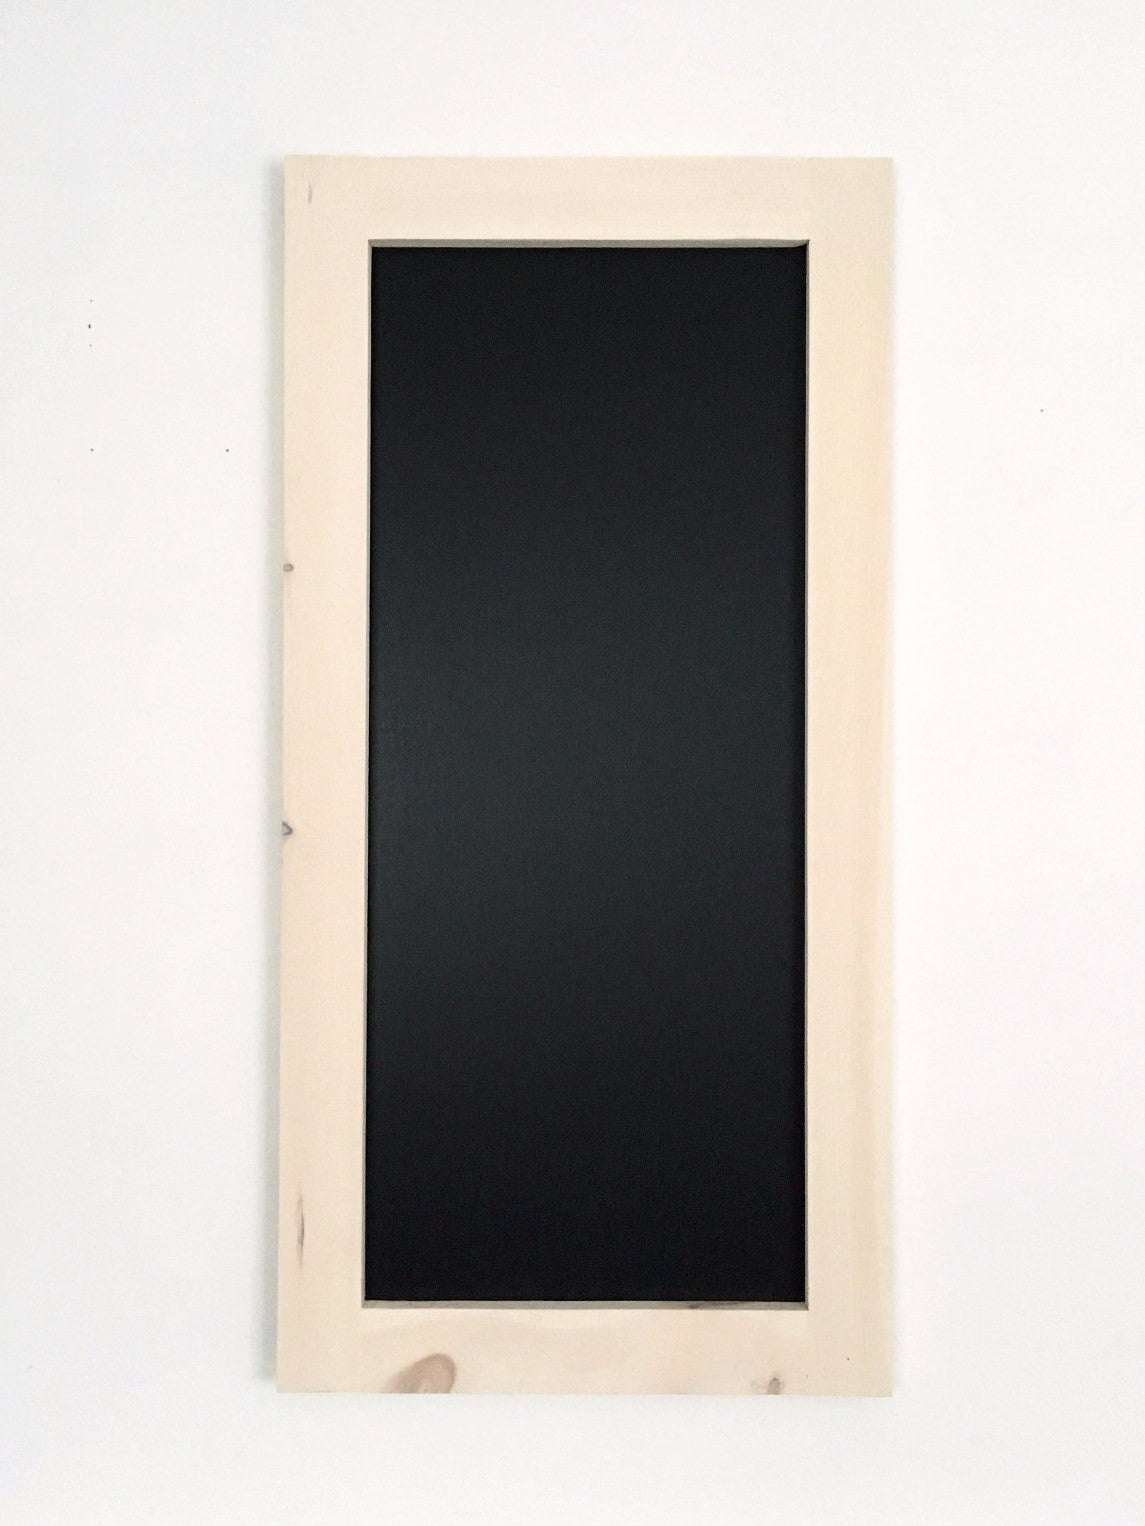 Long Chalkboard with White Wash Stained Pine Frame | 18"|1145|1526|?|b5f1ee095f06e6206aac38f899b2201e|False|UNLIKELY|0.32770371437072754